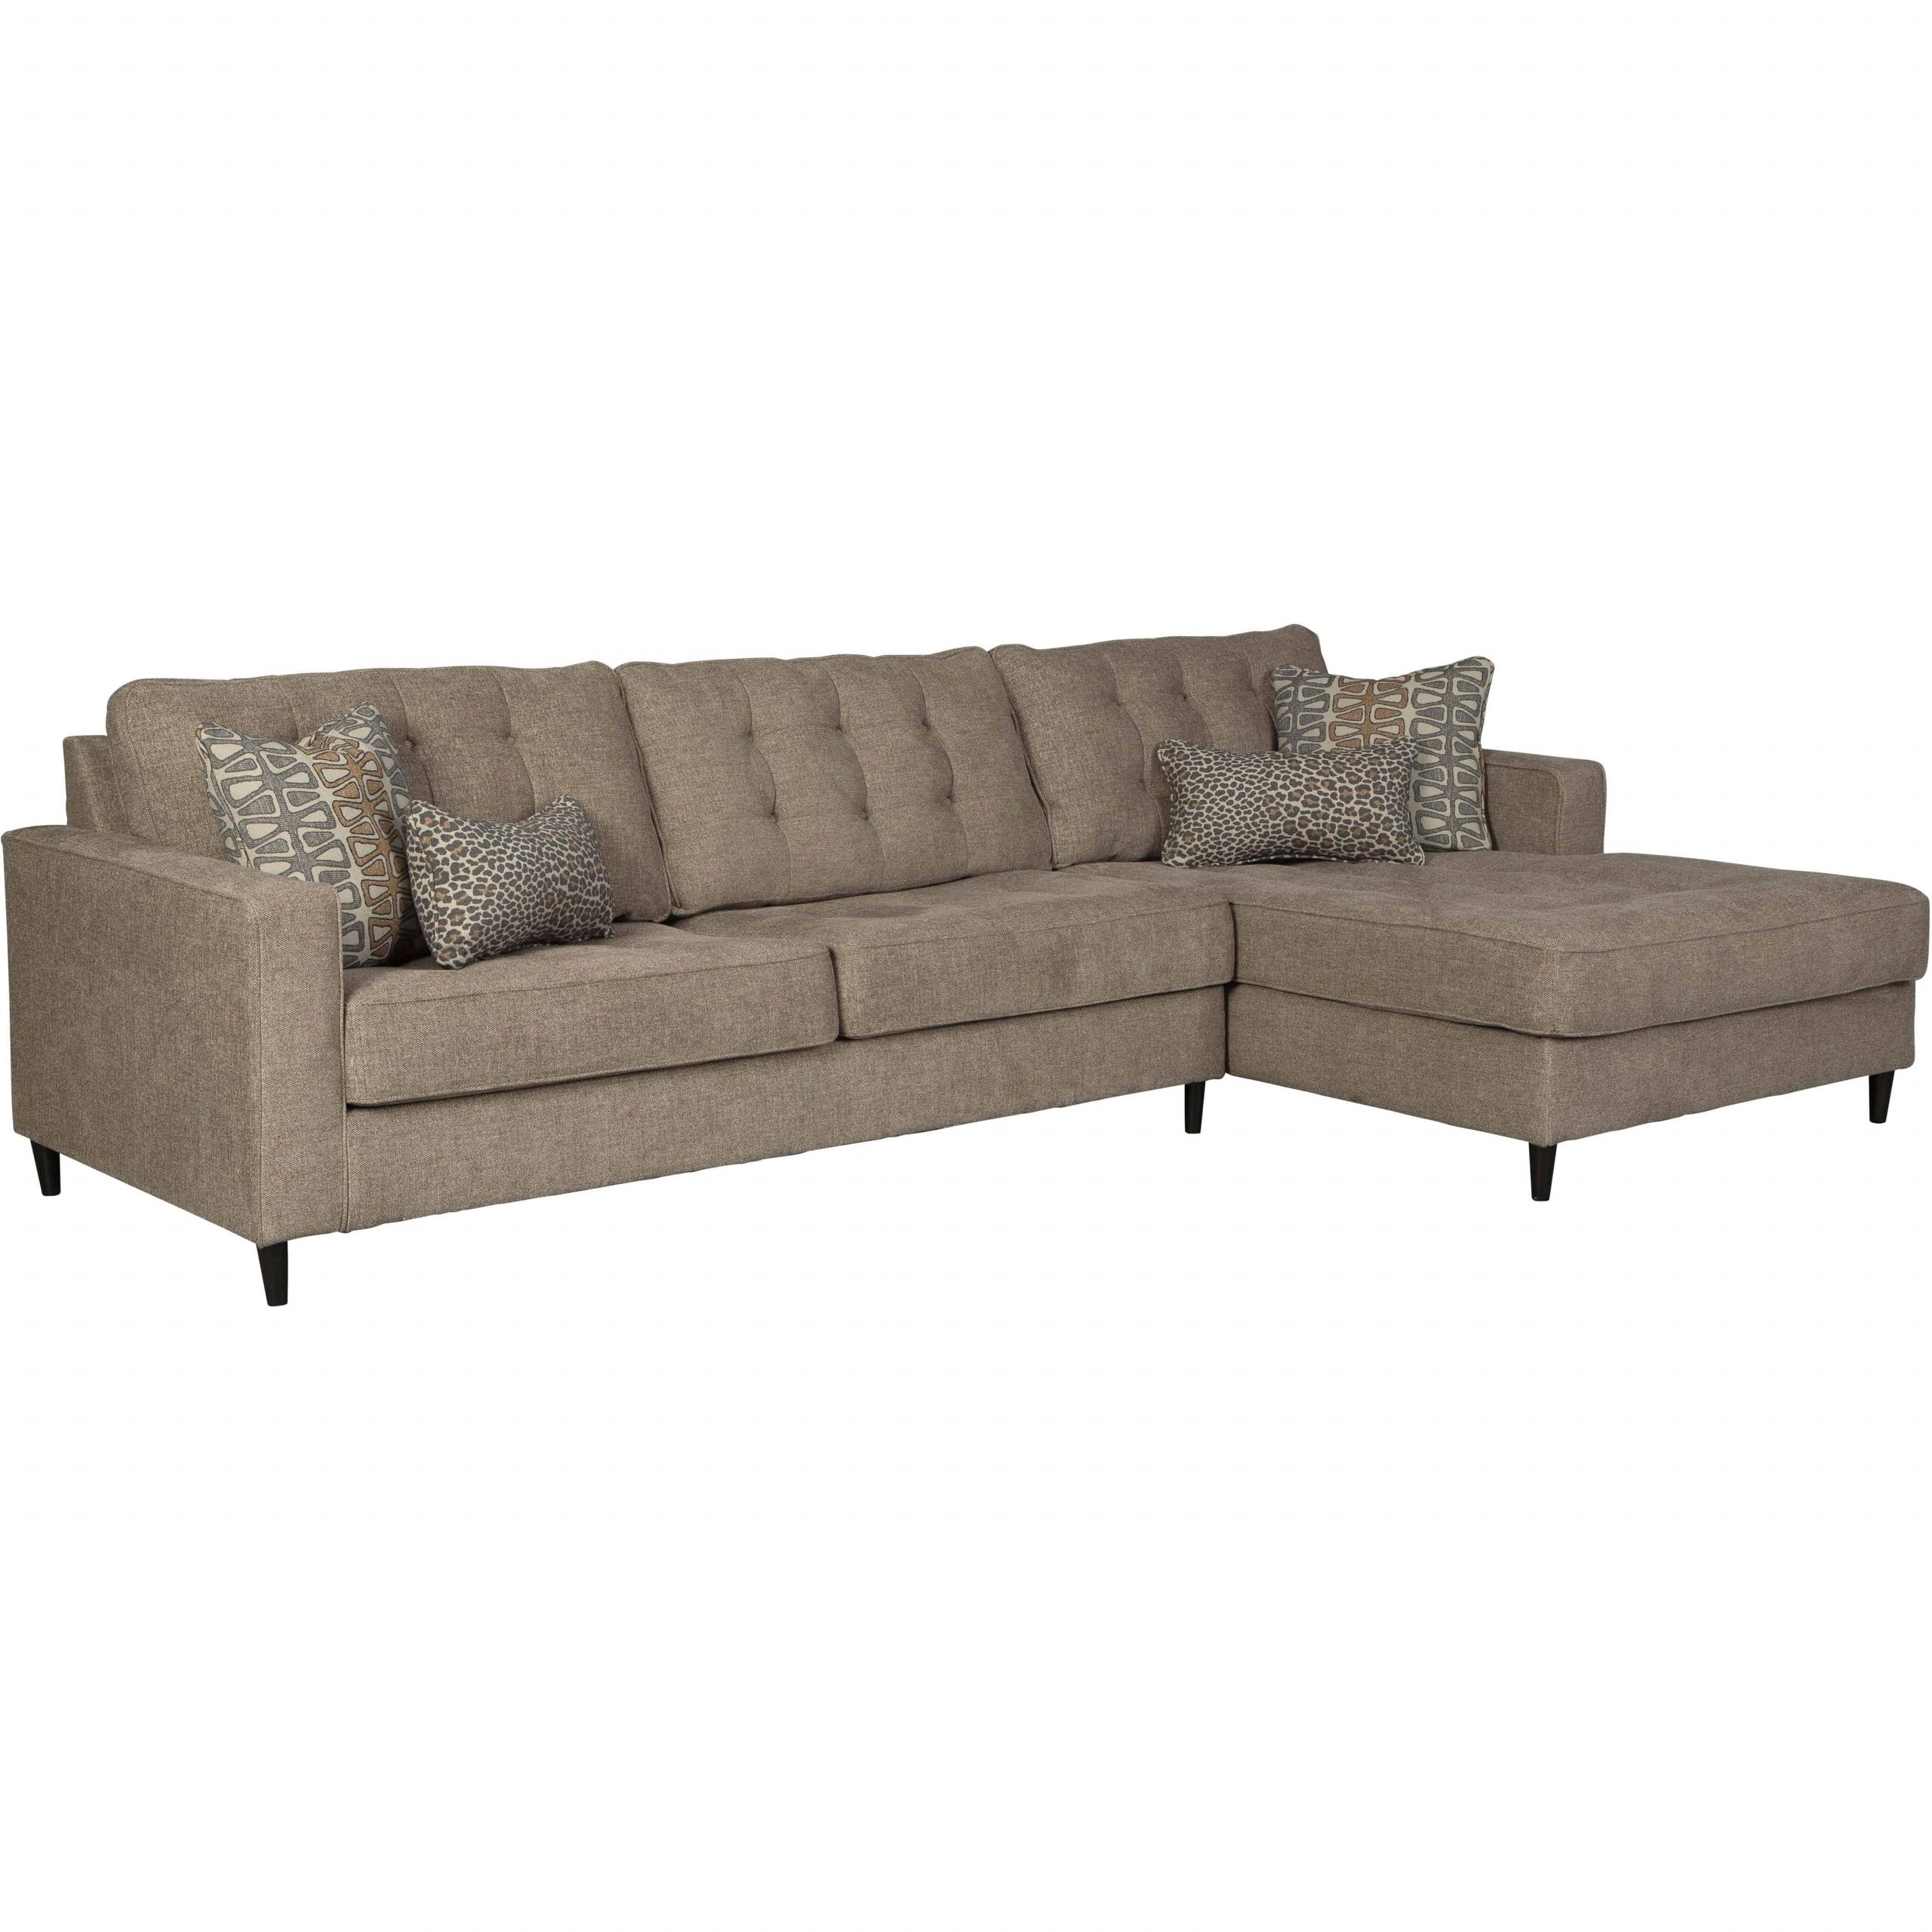 Flintshire 2 Piece Raf Chaise Sectional   Furnishmyhome (View 10 of 15)